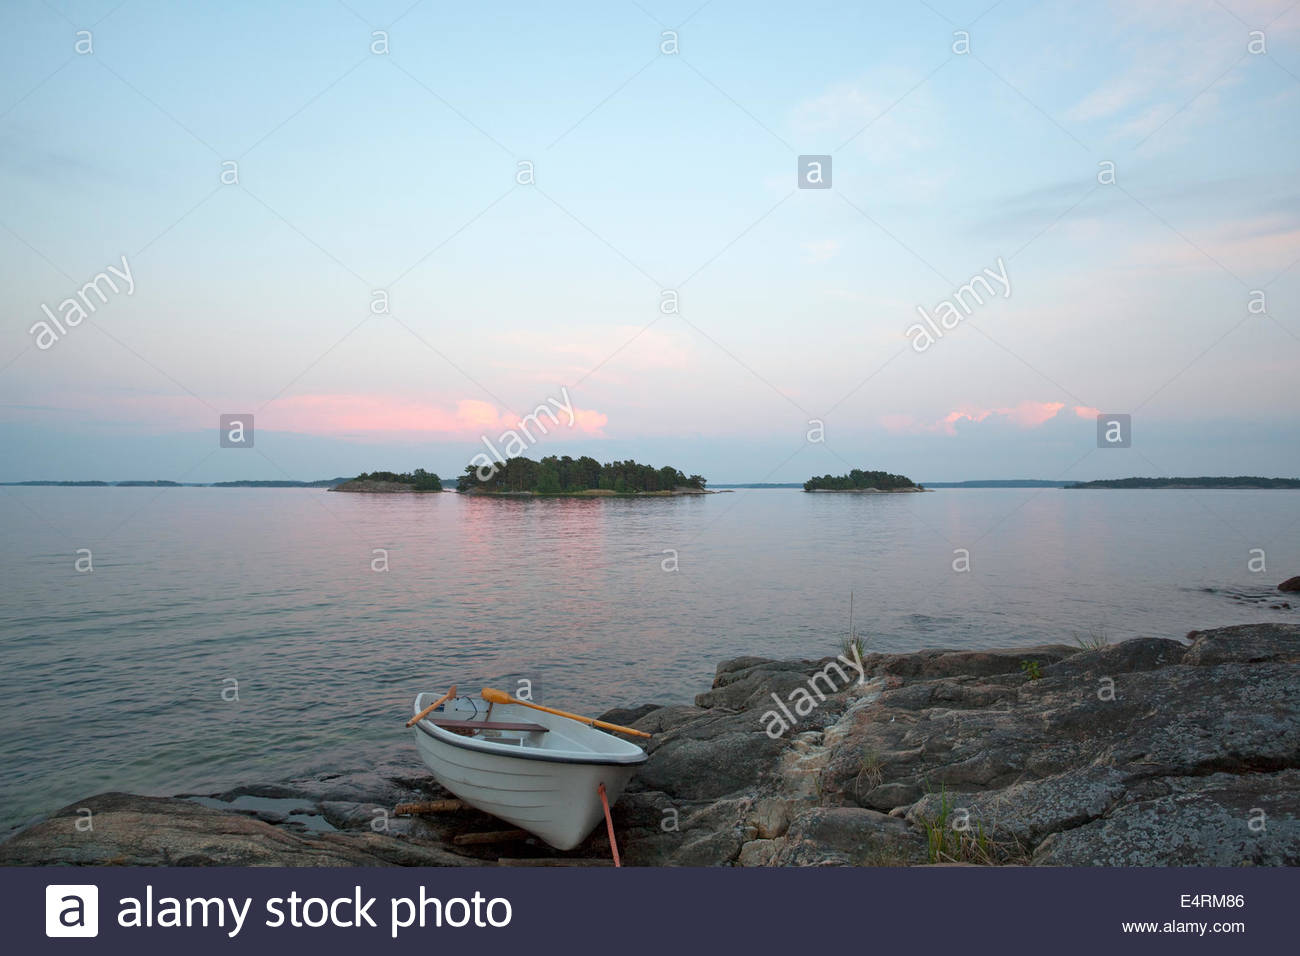 Tranquility in Finland - Stock Image